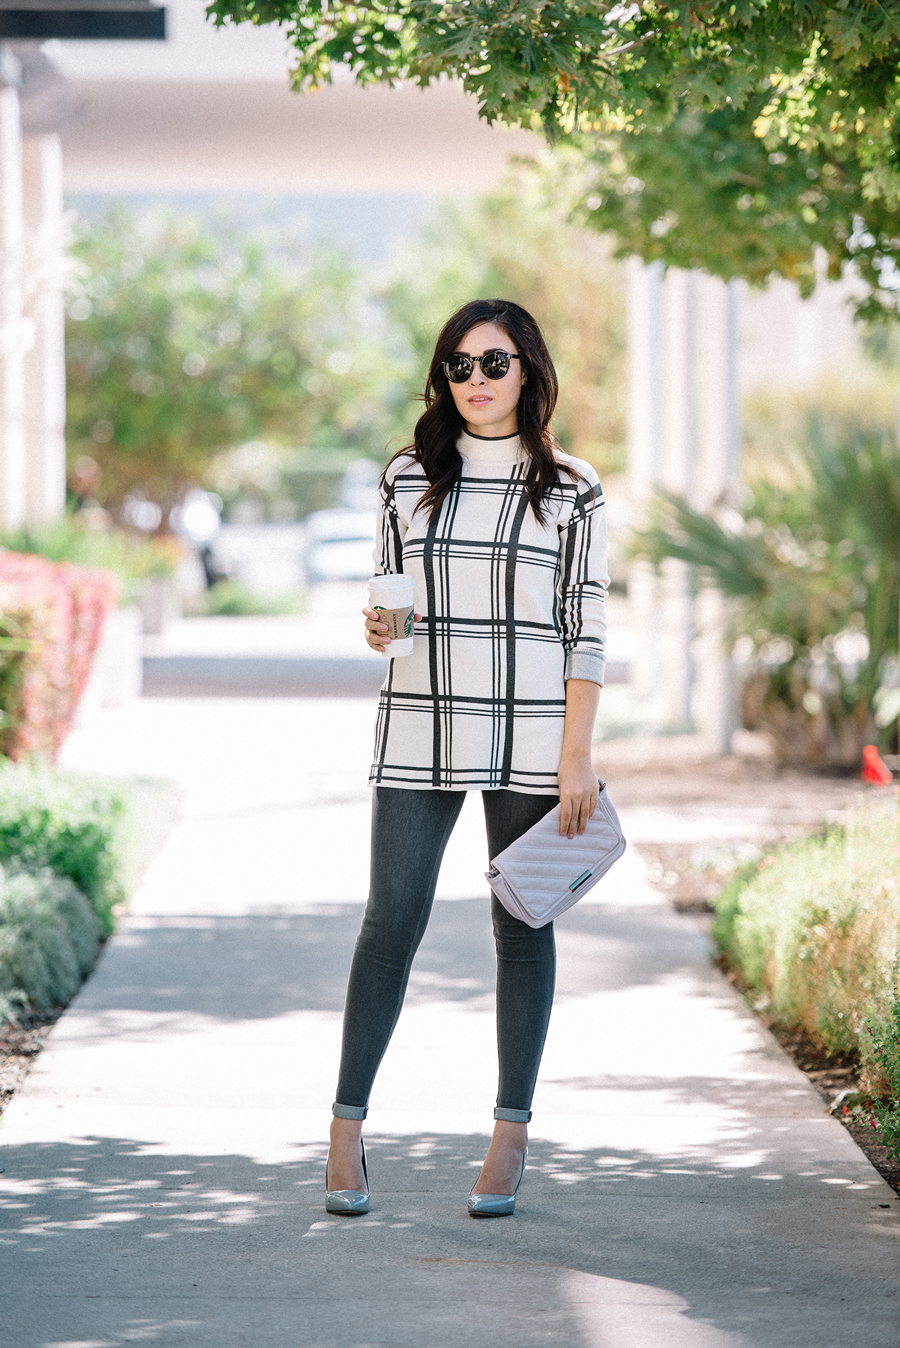 FIXIN-TO-THRILL-TOPSHOP-NORDSTROM-GREY-TREND-CARLOS-BARRON-FALL-OCTOBER-ATX-AUSTIN-STYLE-BLOG-LILAC-FW15-TRENDY-CHIC-GLAM-FASHION-TEXAS-11